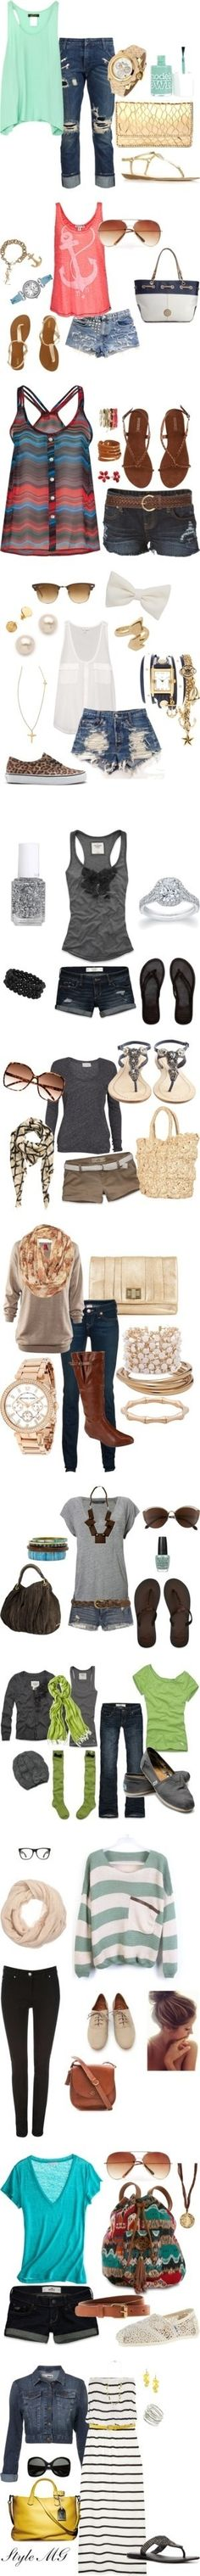 Sexy casual outfits that are great for anything